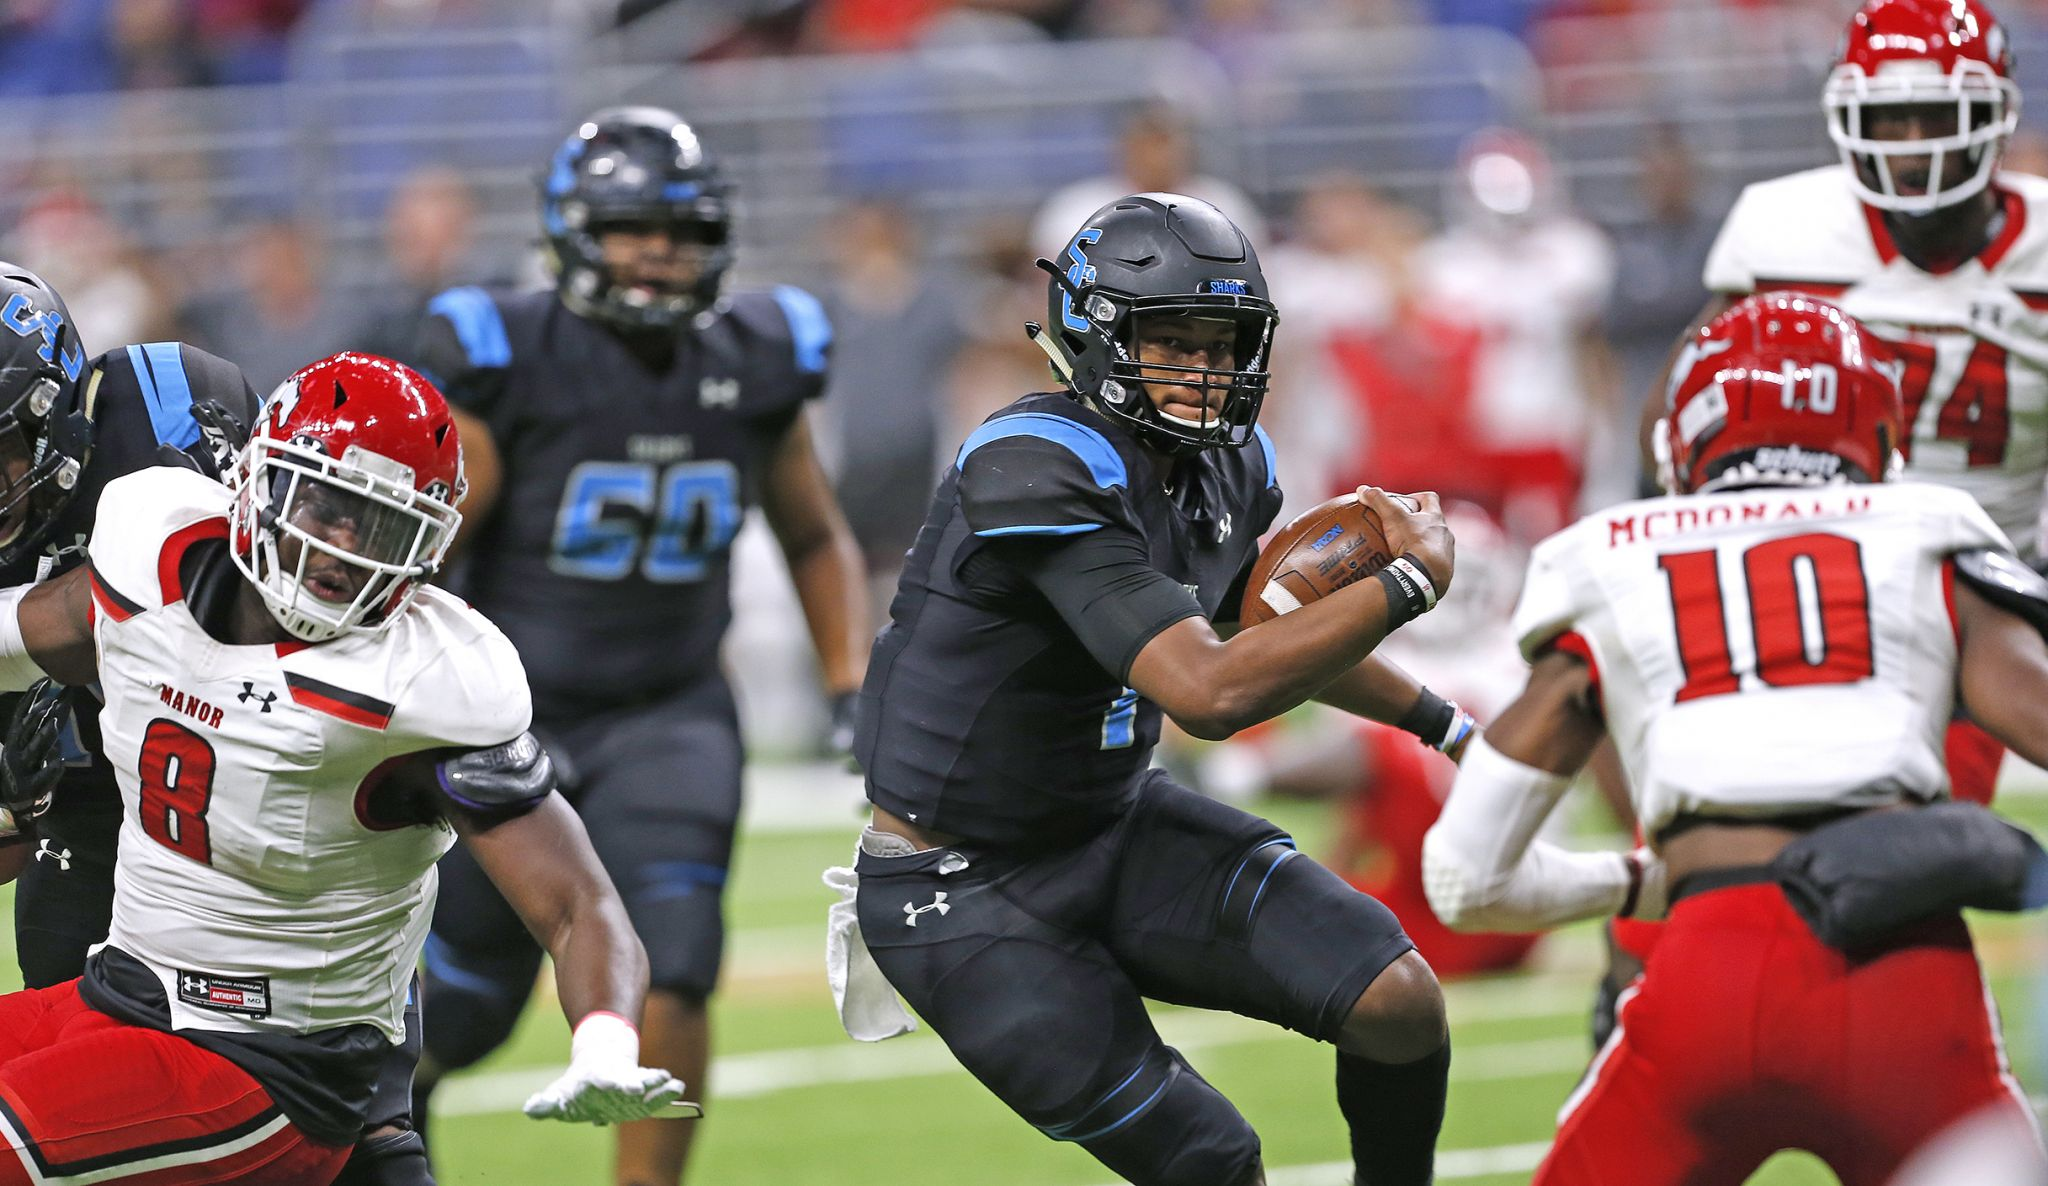 Shadow Creek dominates Manor for return to state semifinals